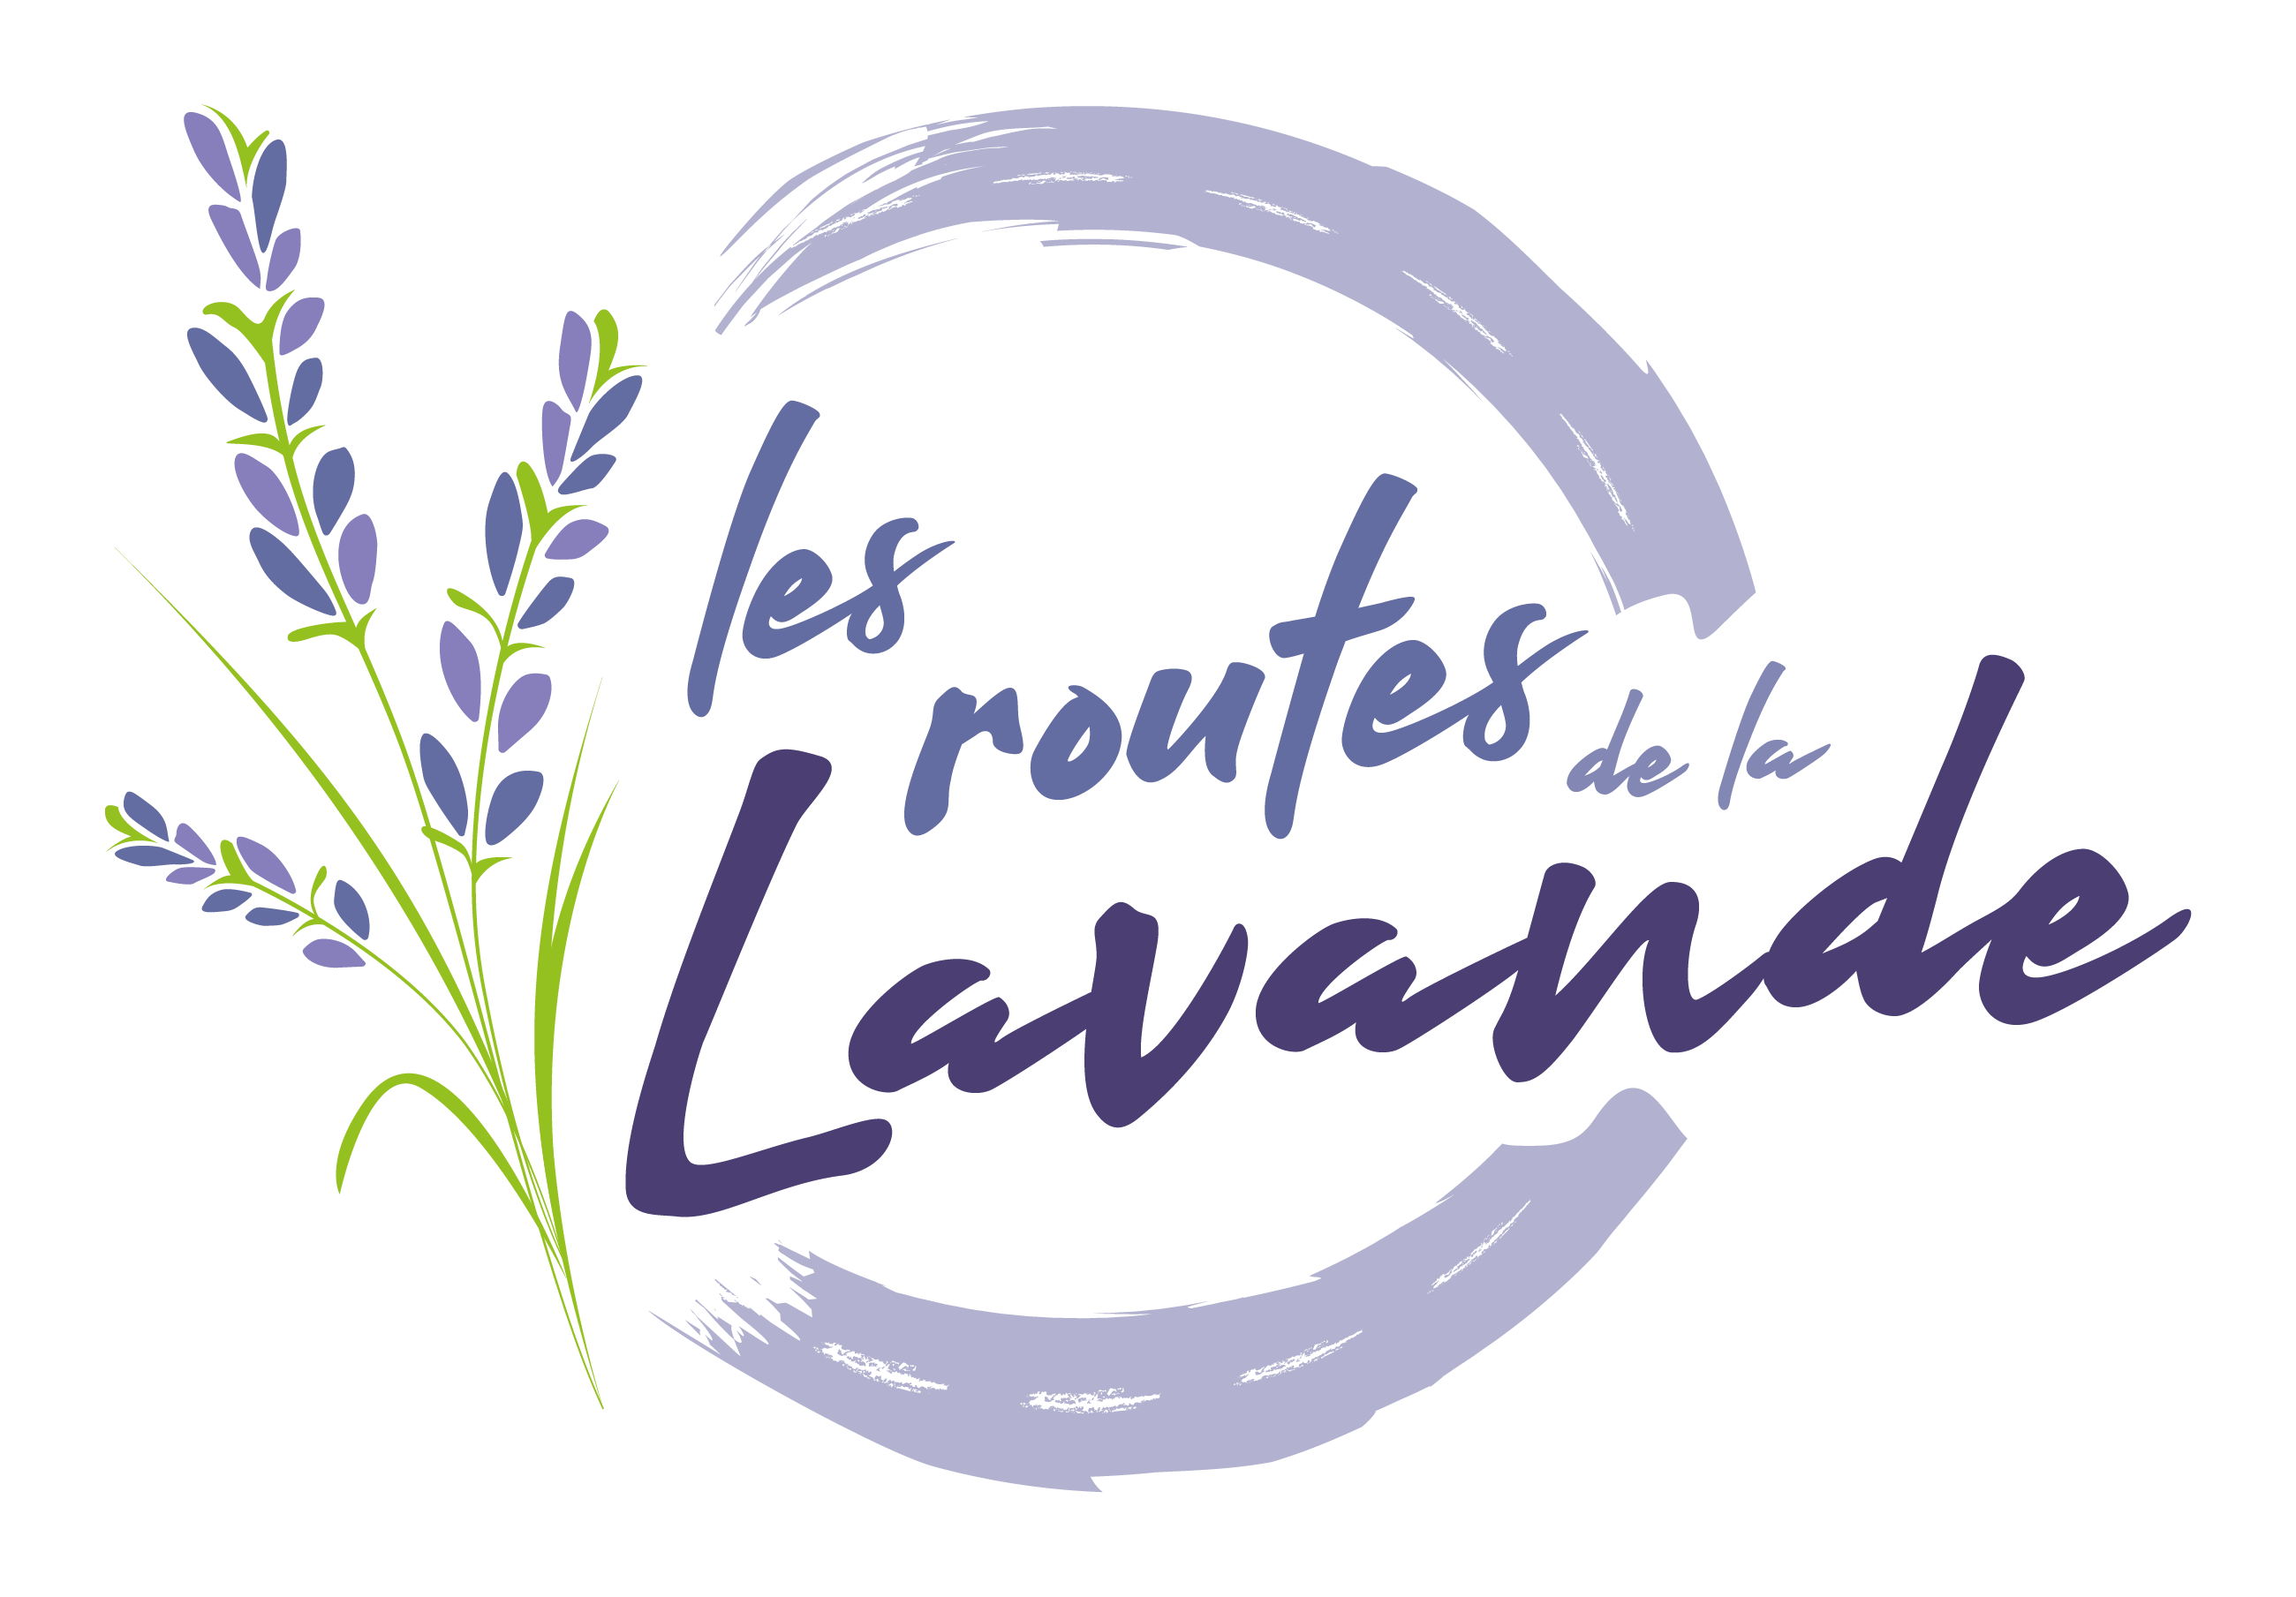 logo Routes de la lavande light